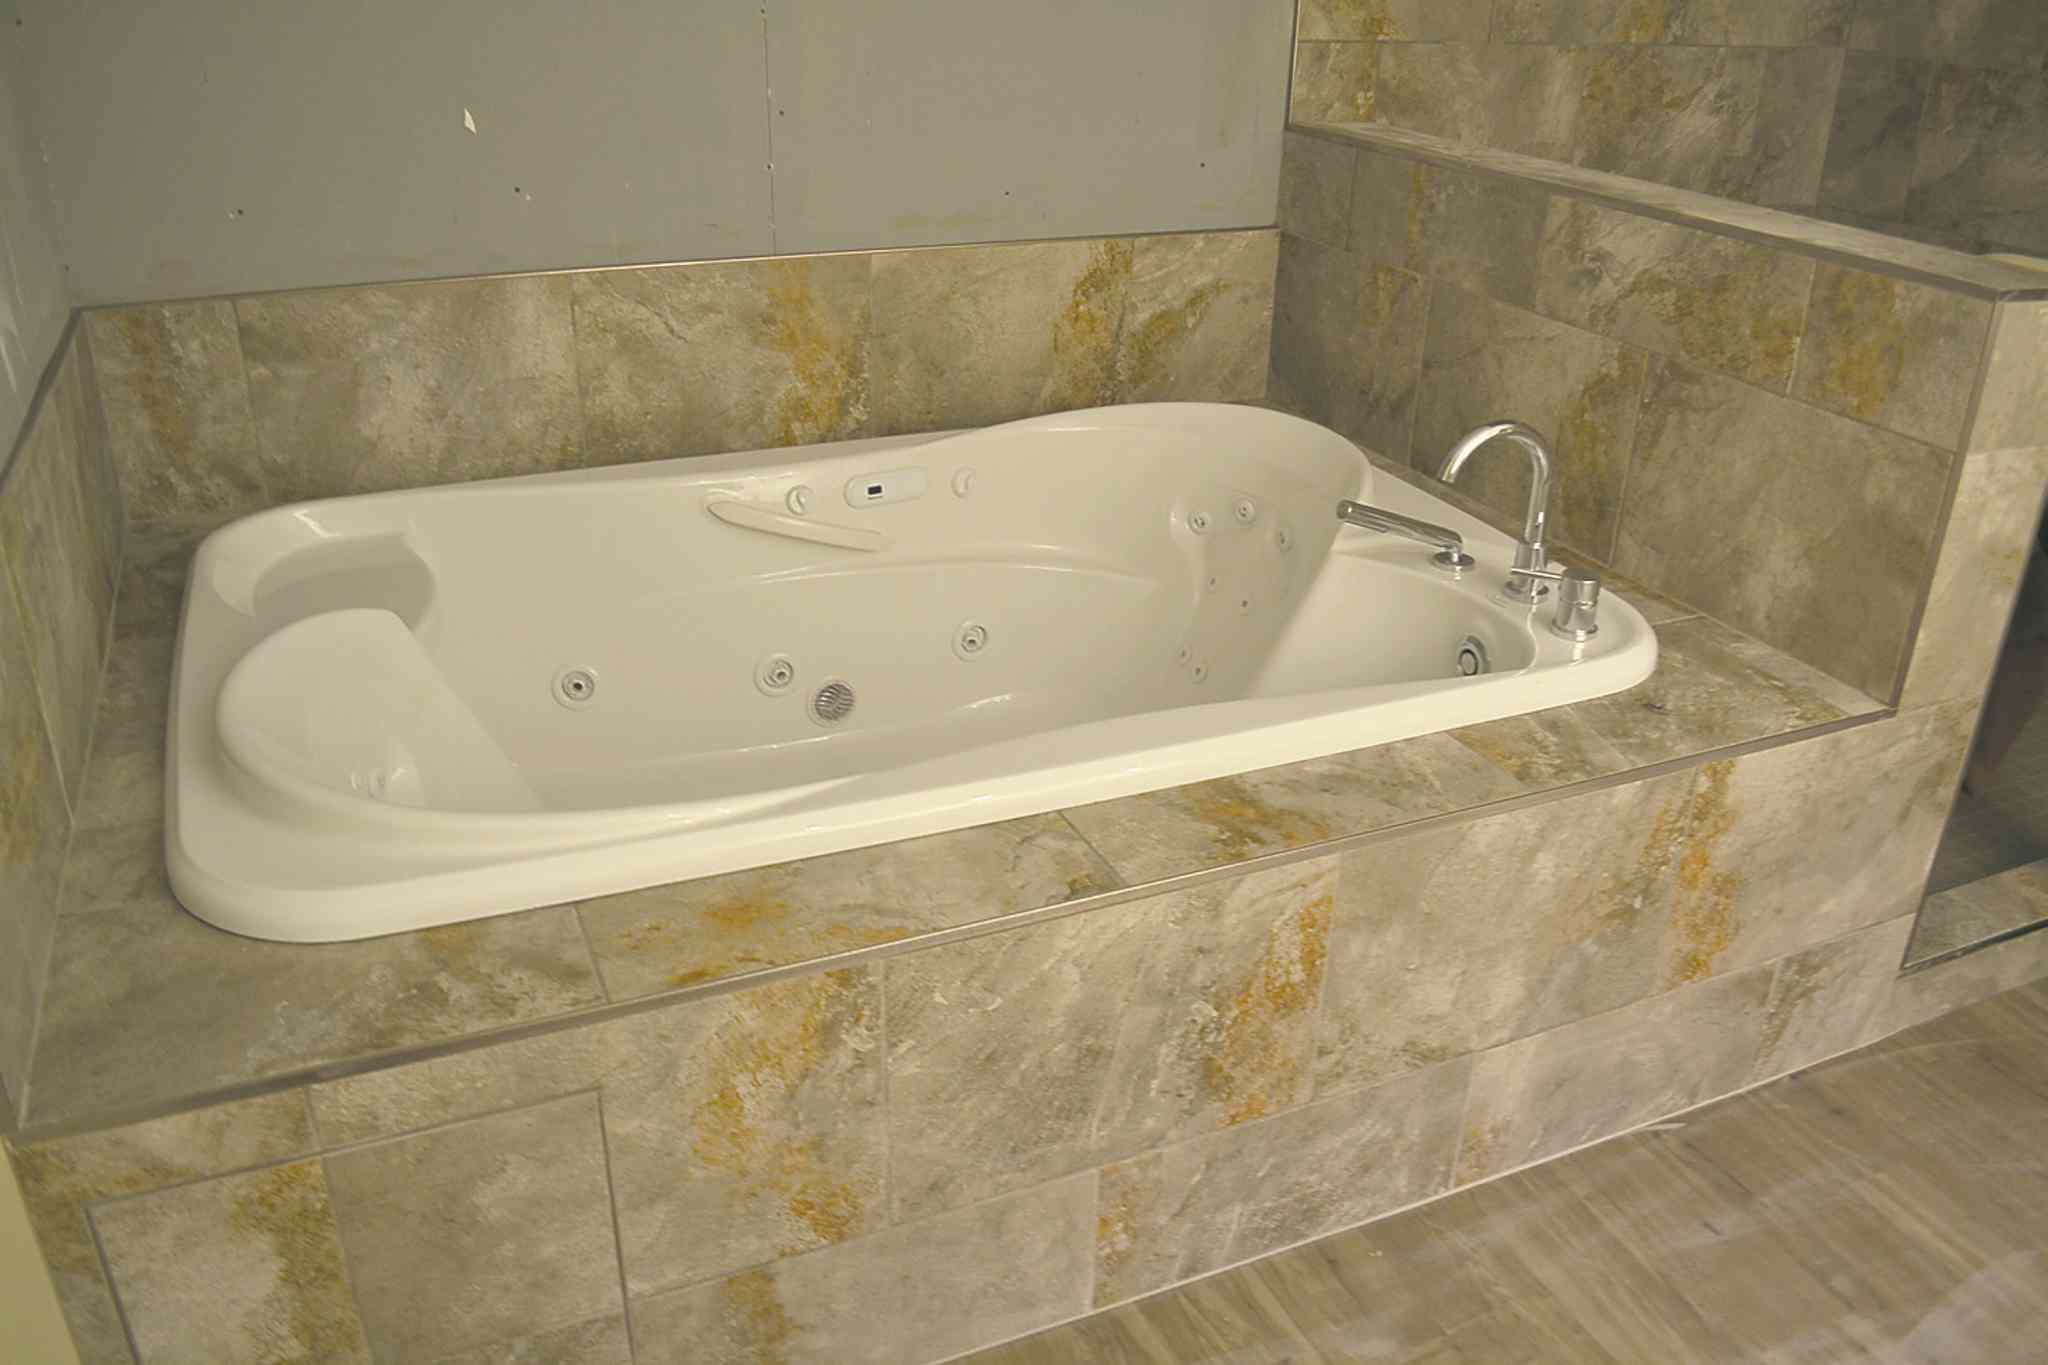 Installed Maax Crescendo jetted tub.